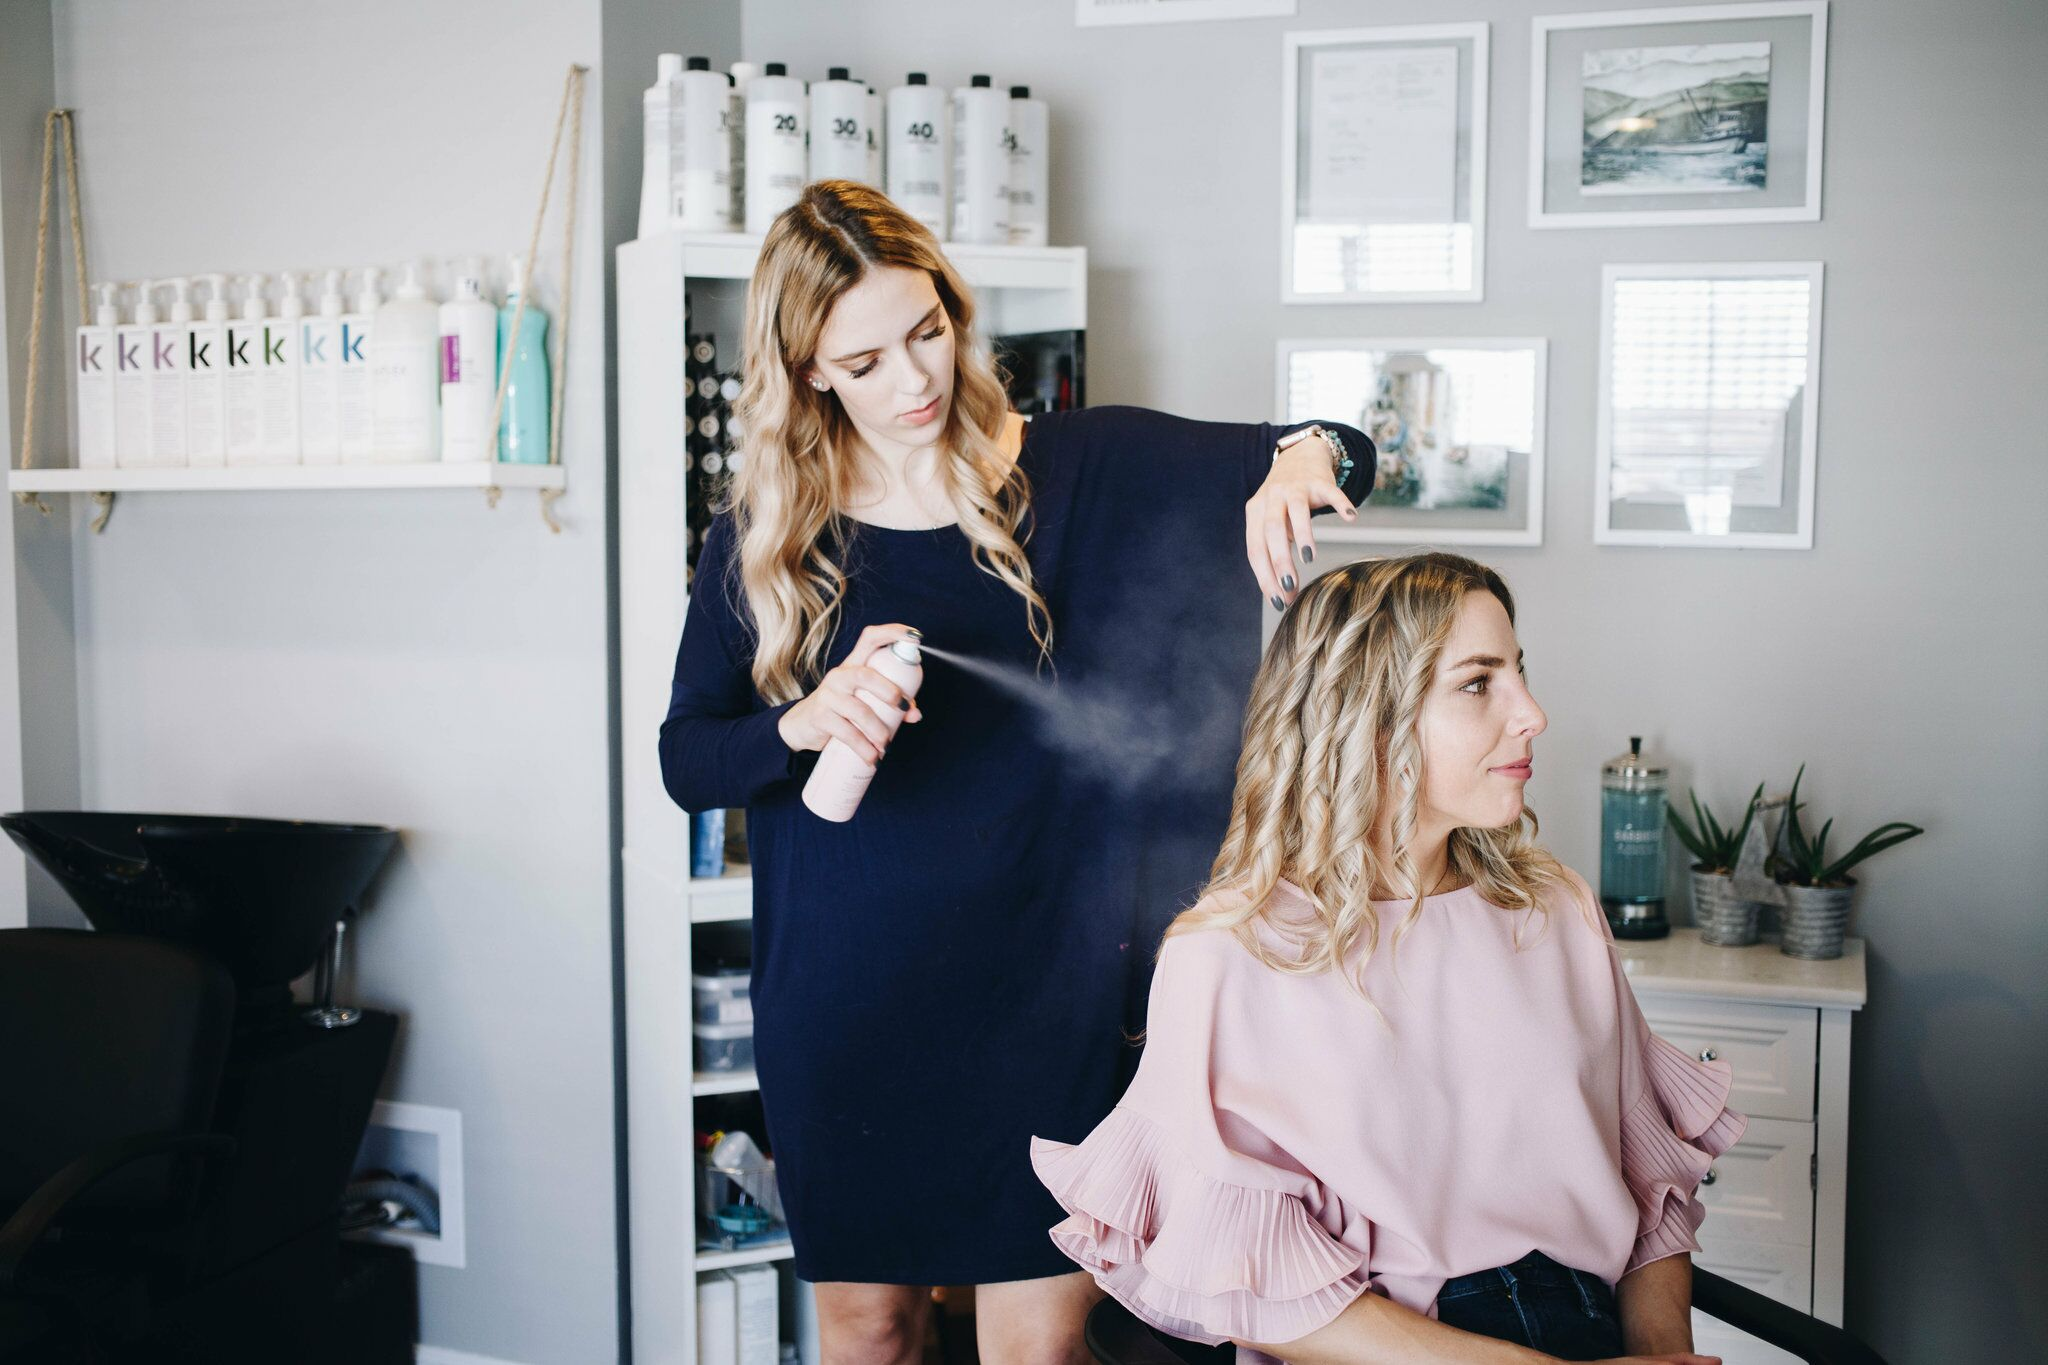 beauty salons in memphis, tn - the knot